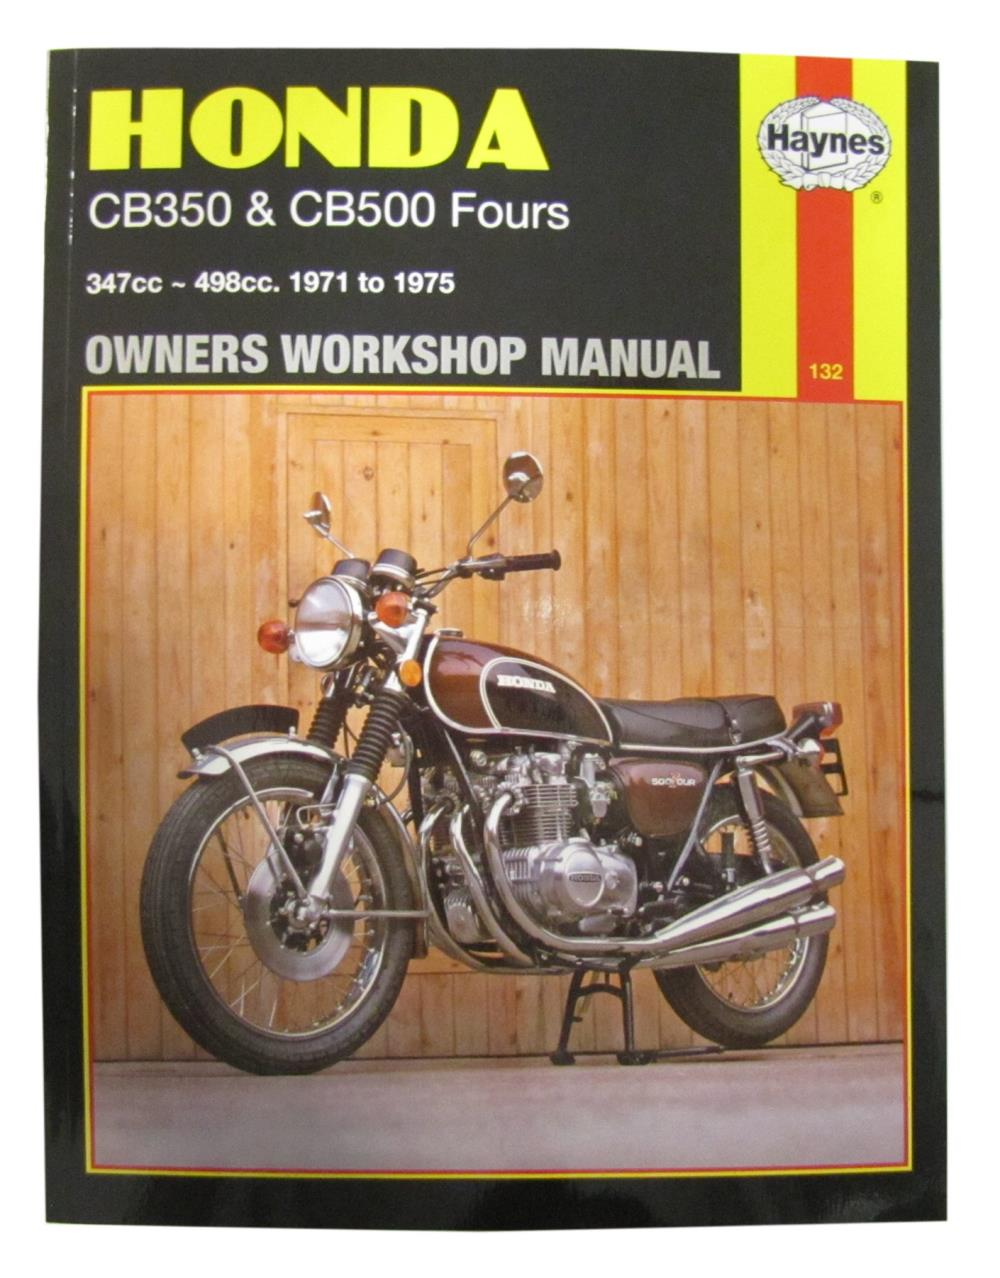 the all new fact packed 1977 78 cb guide